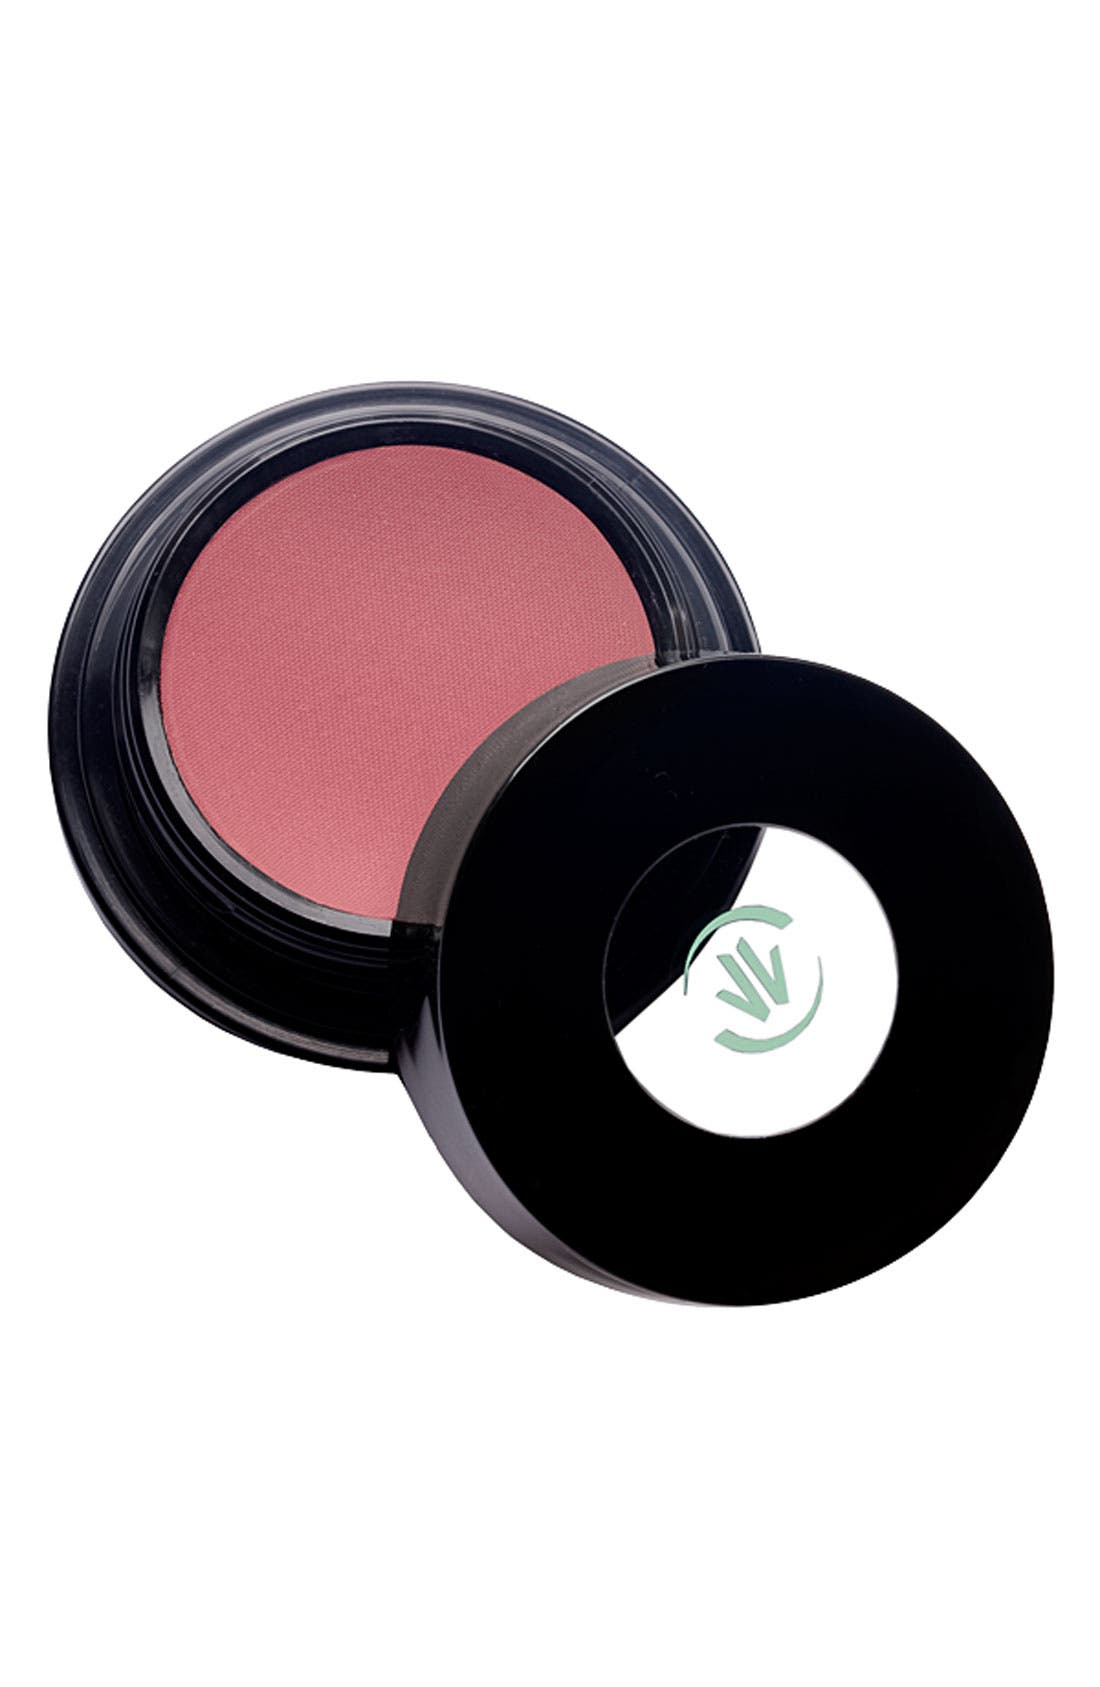 Vincent Longo 'Water Canvas' Blush